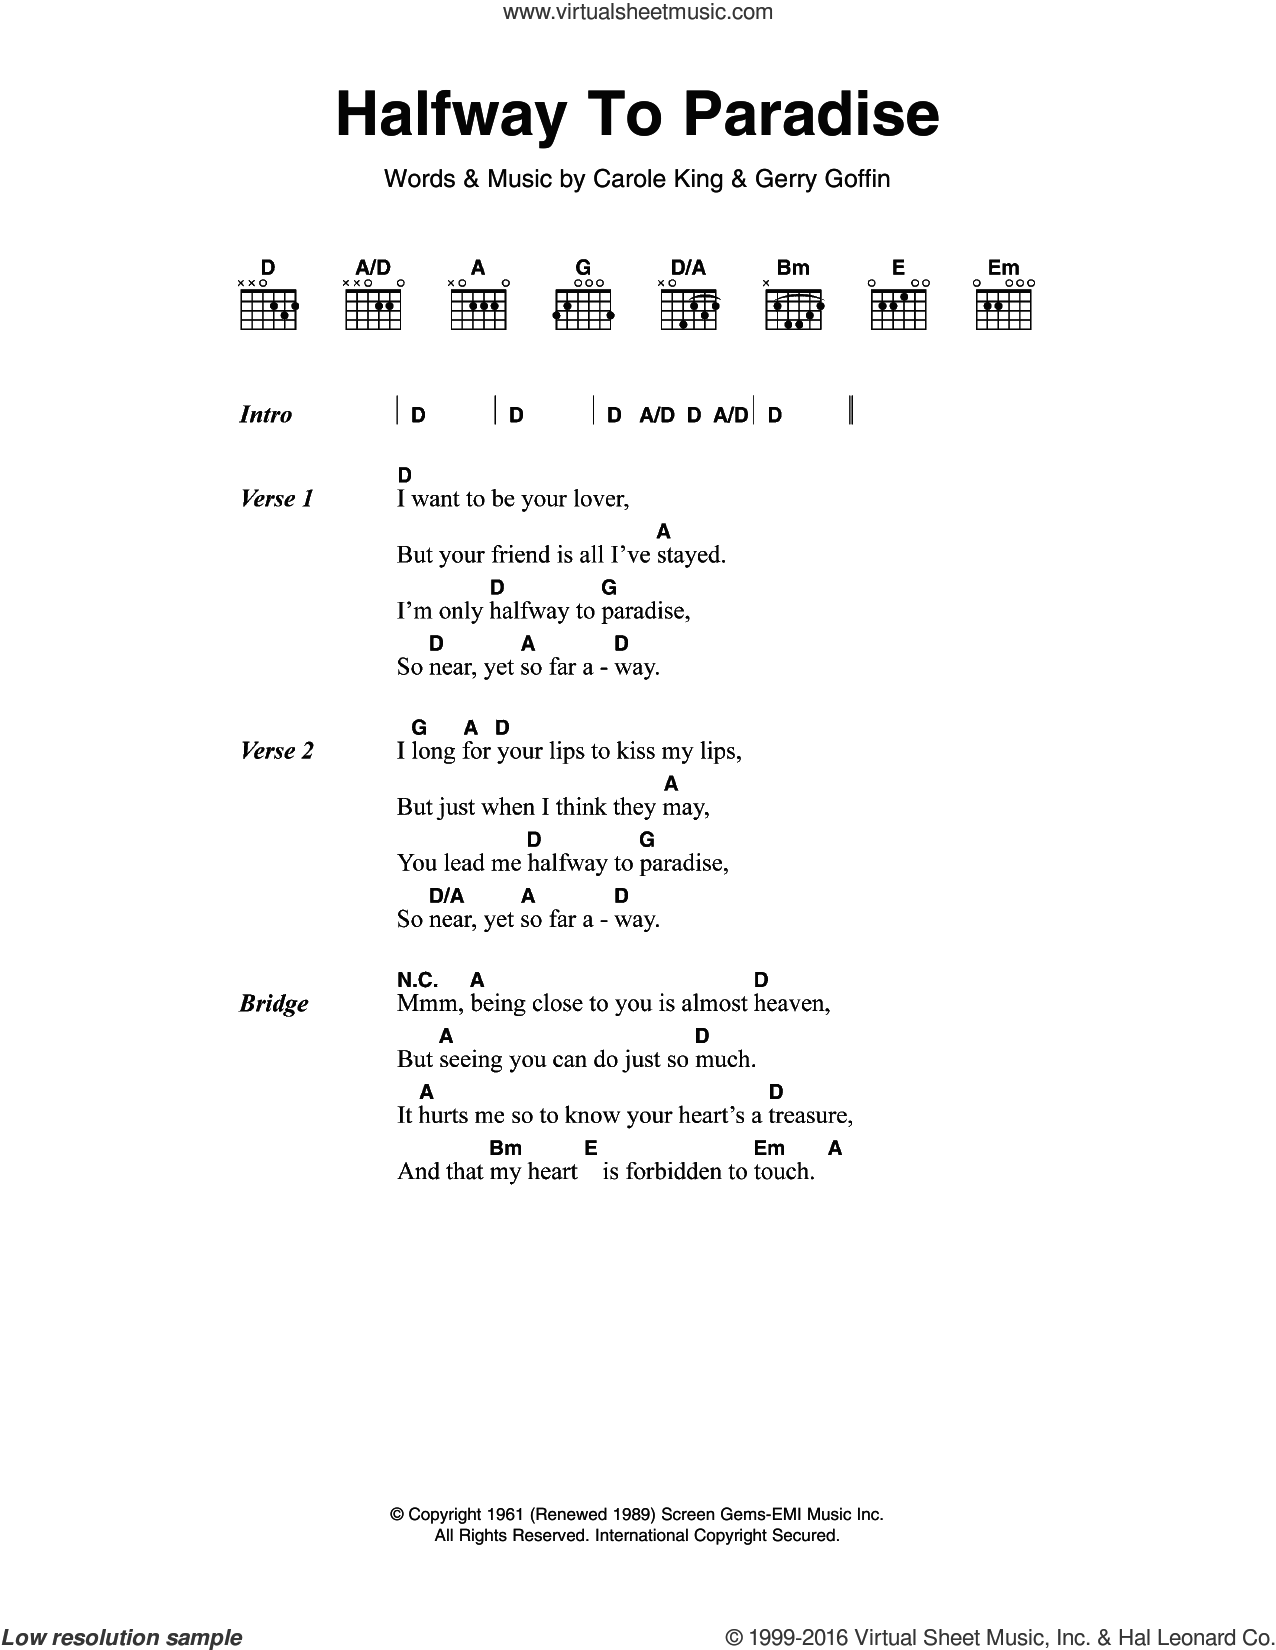 Halfway To Paradise sheet music for guitar (chords) by Billy Fury, Carole King and Gerry Goffin. Score Image Preview.